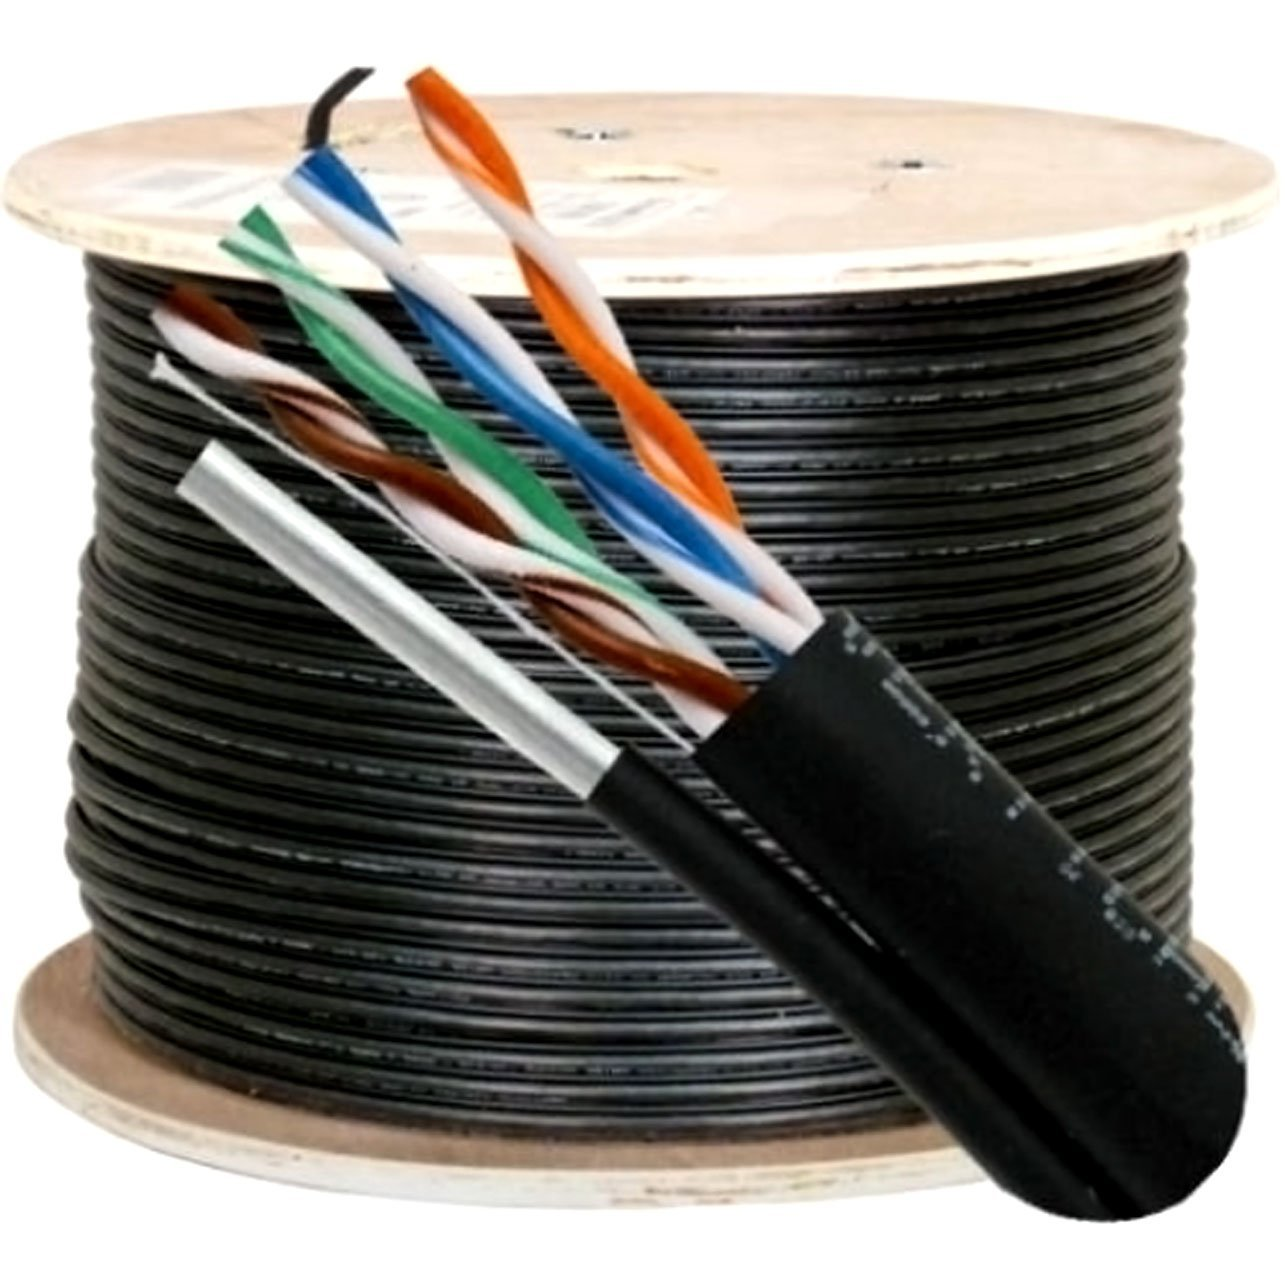 Get Quotations · Vertical Cable Cat5e, 350 Mhz, UTP, UV Jacket, Outdoor,  CMX,